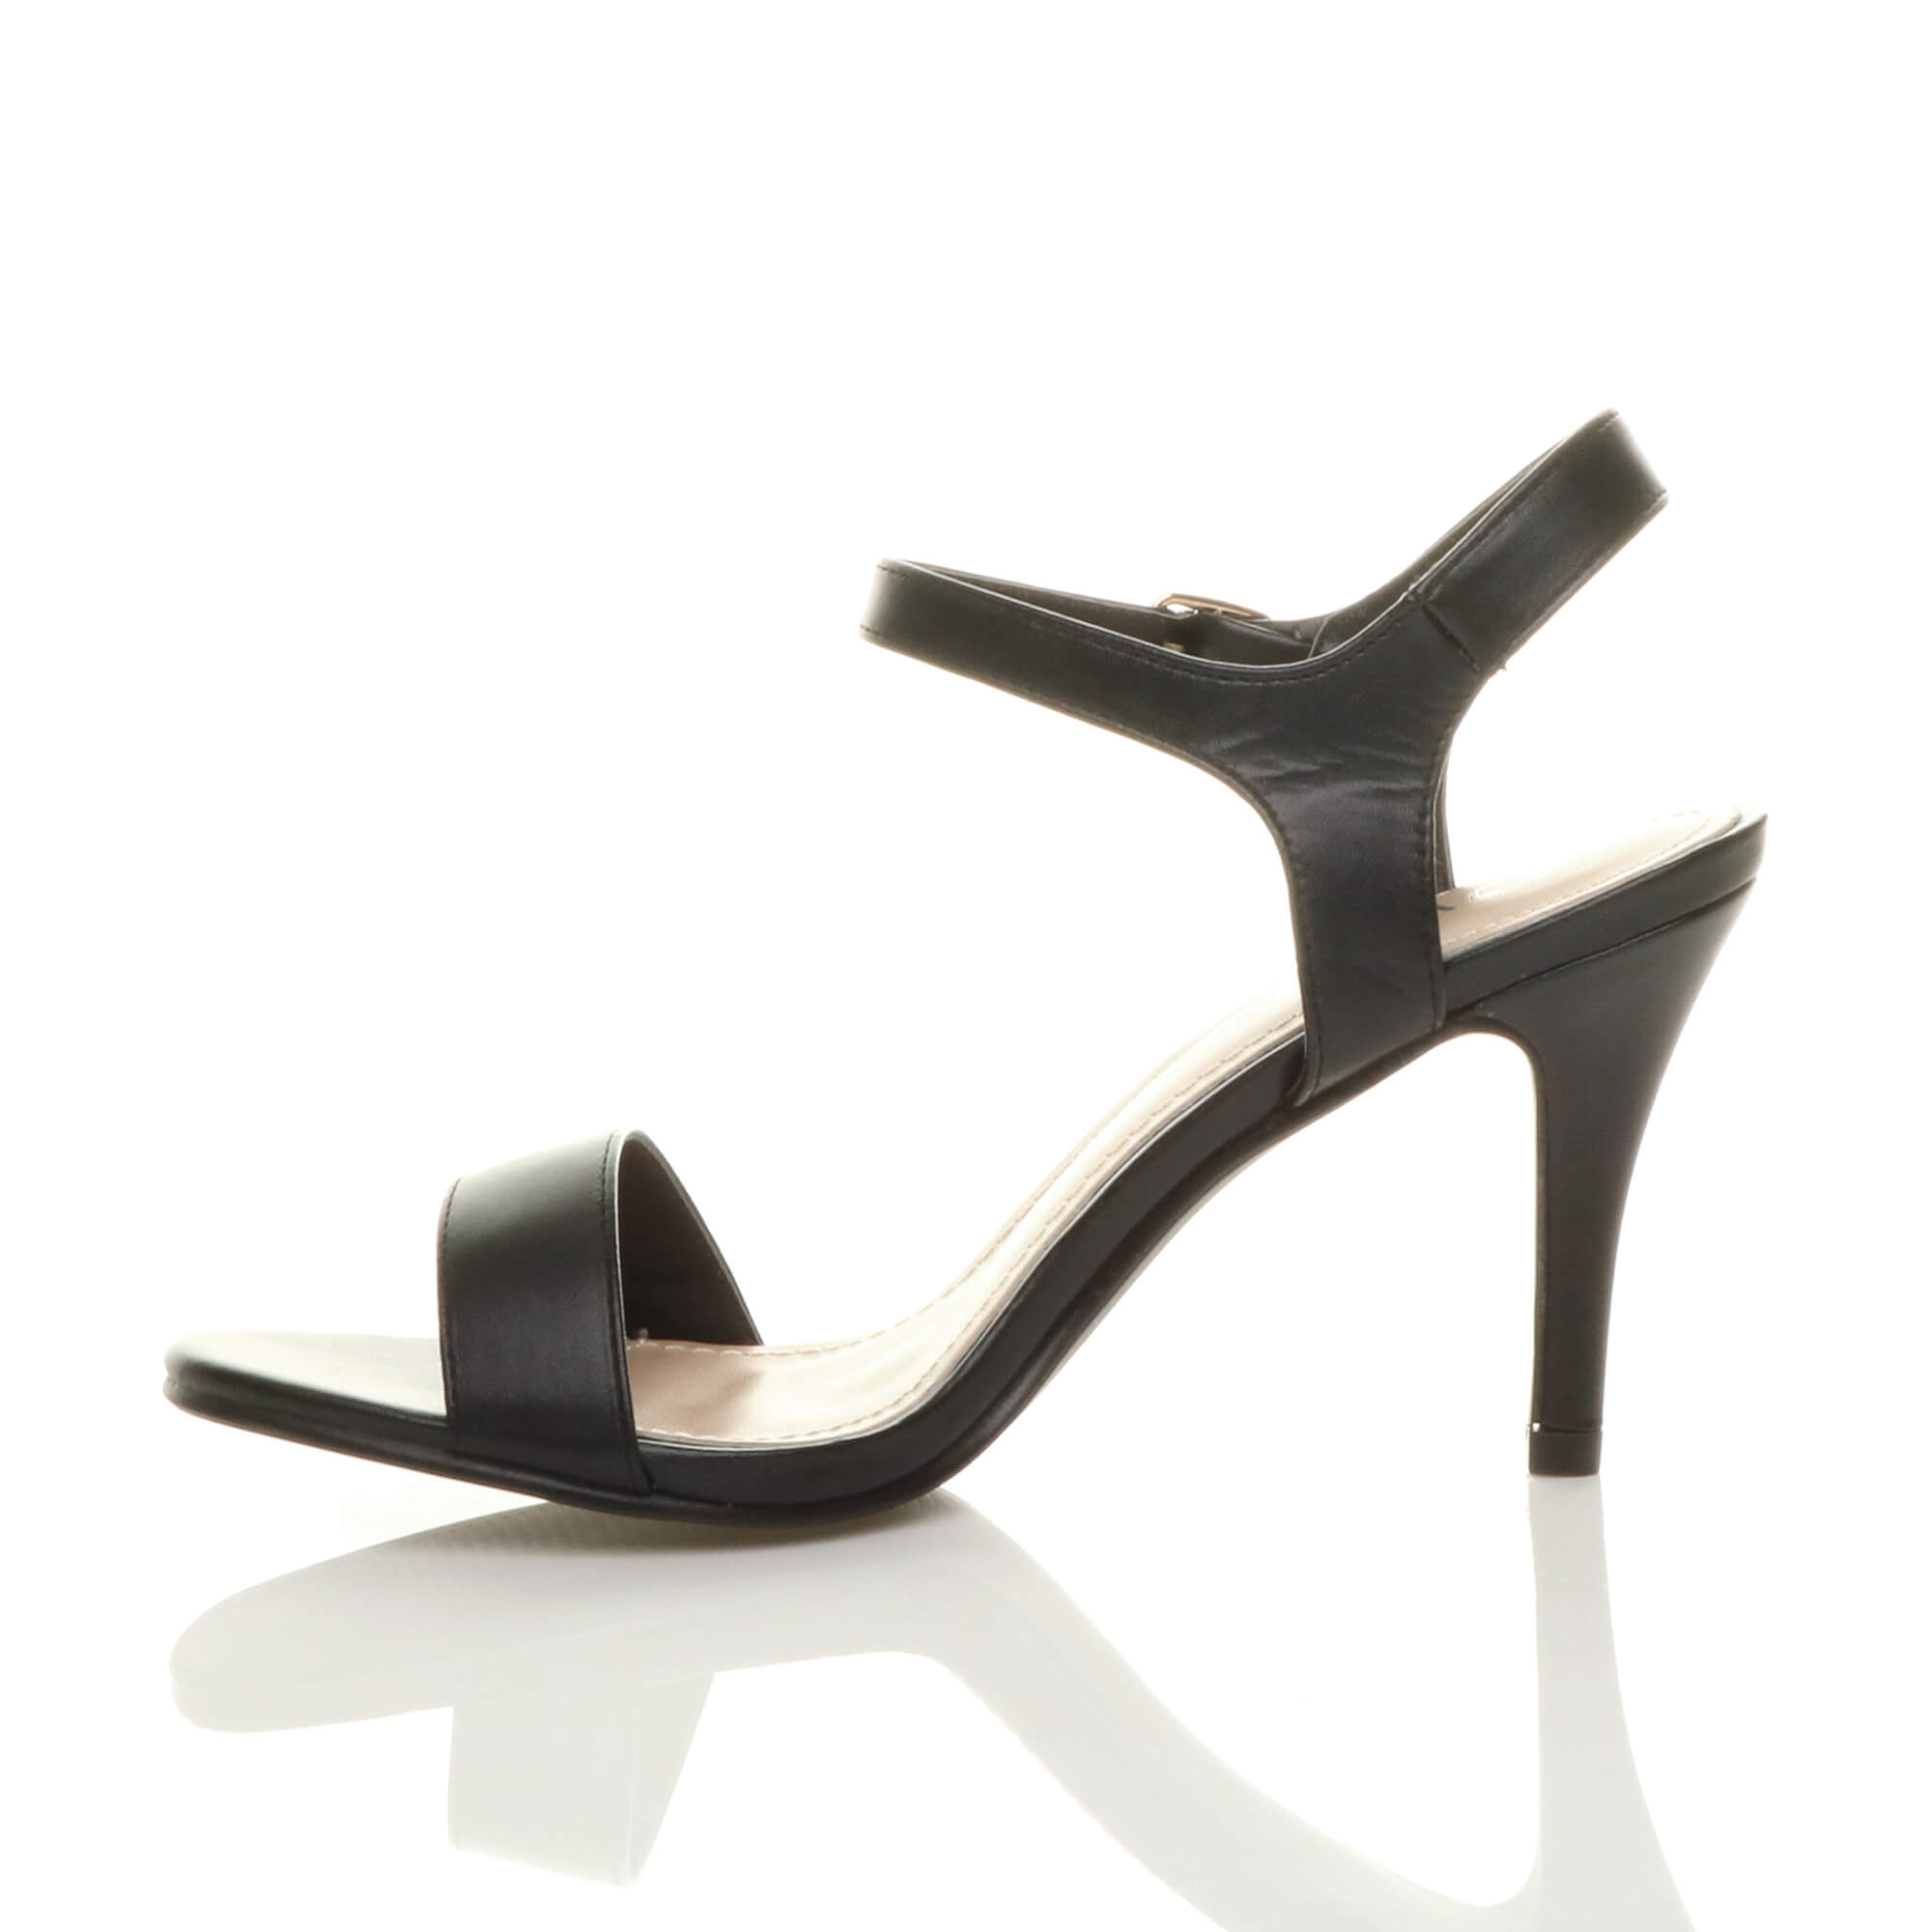 WOMENS-LADIES-HIGH-HEEL-BUCKLE-STRAPPY-BASIC-BARELY-THERE-SANDALS-SHOES-SIZE thumbnail 4